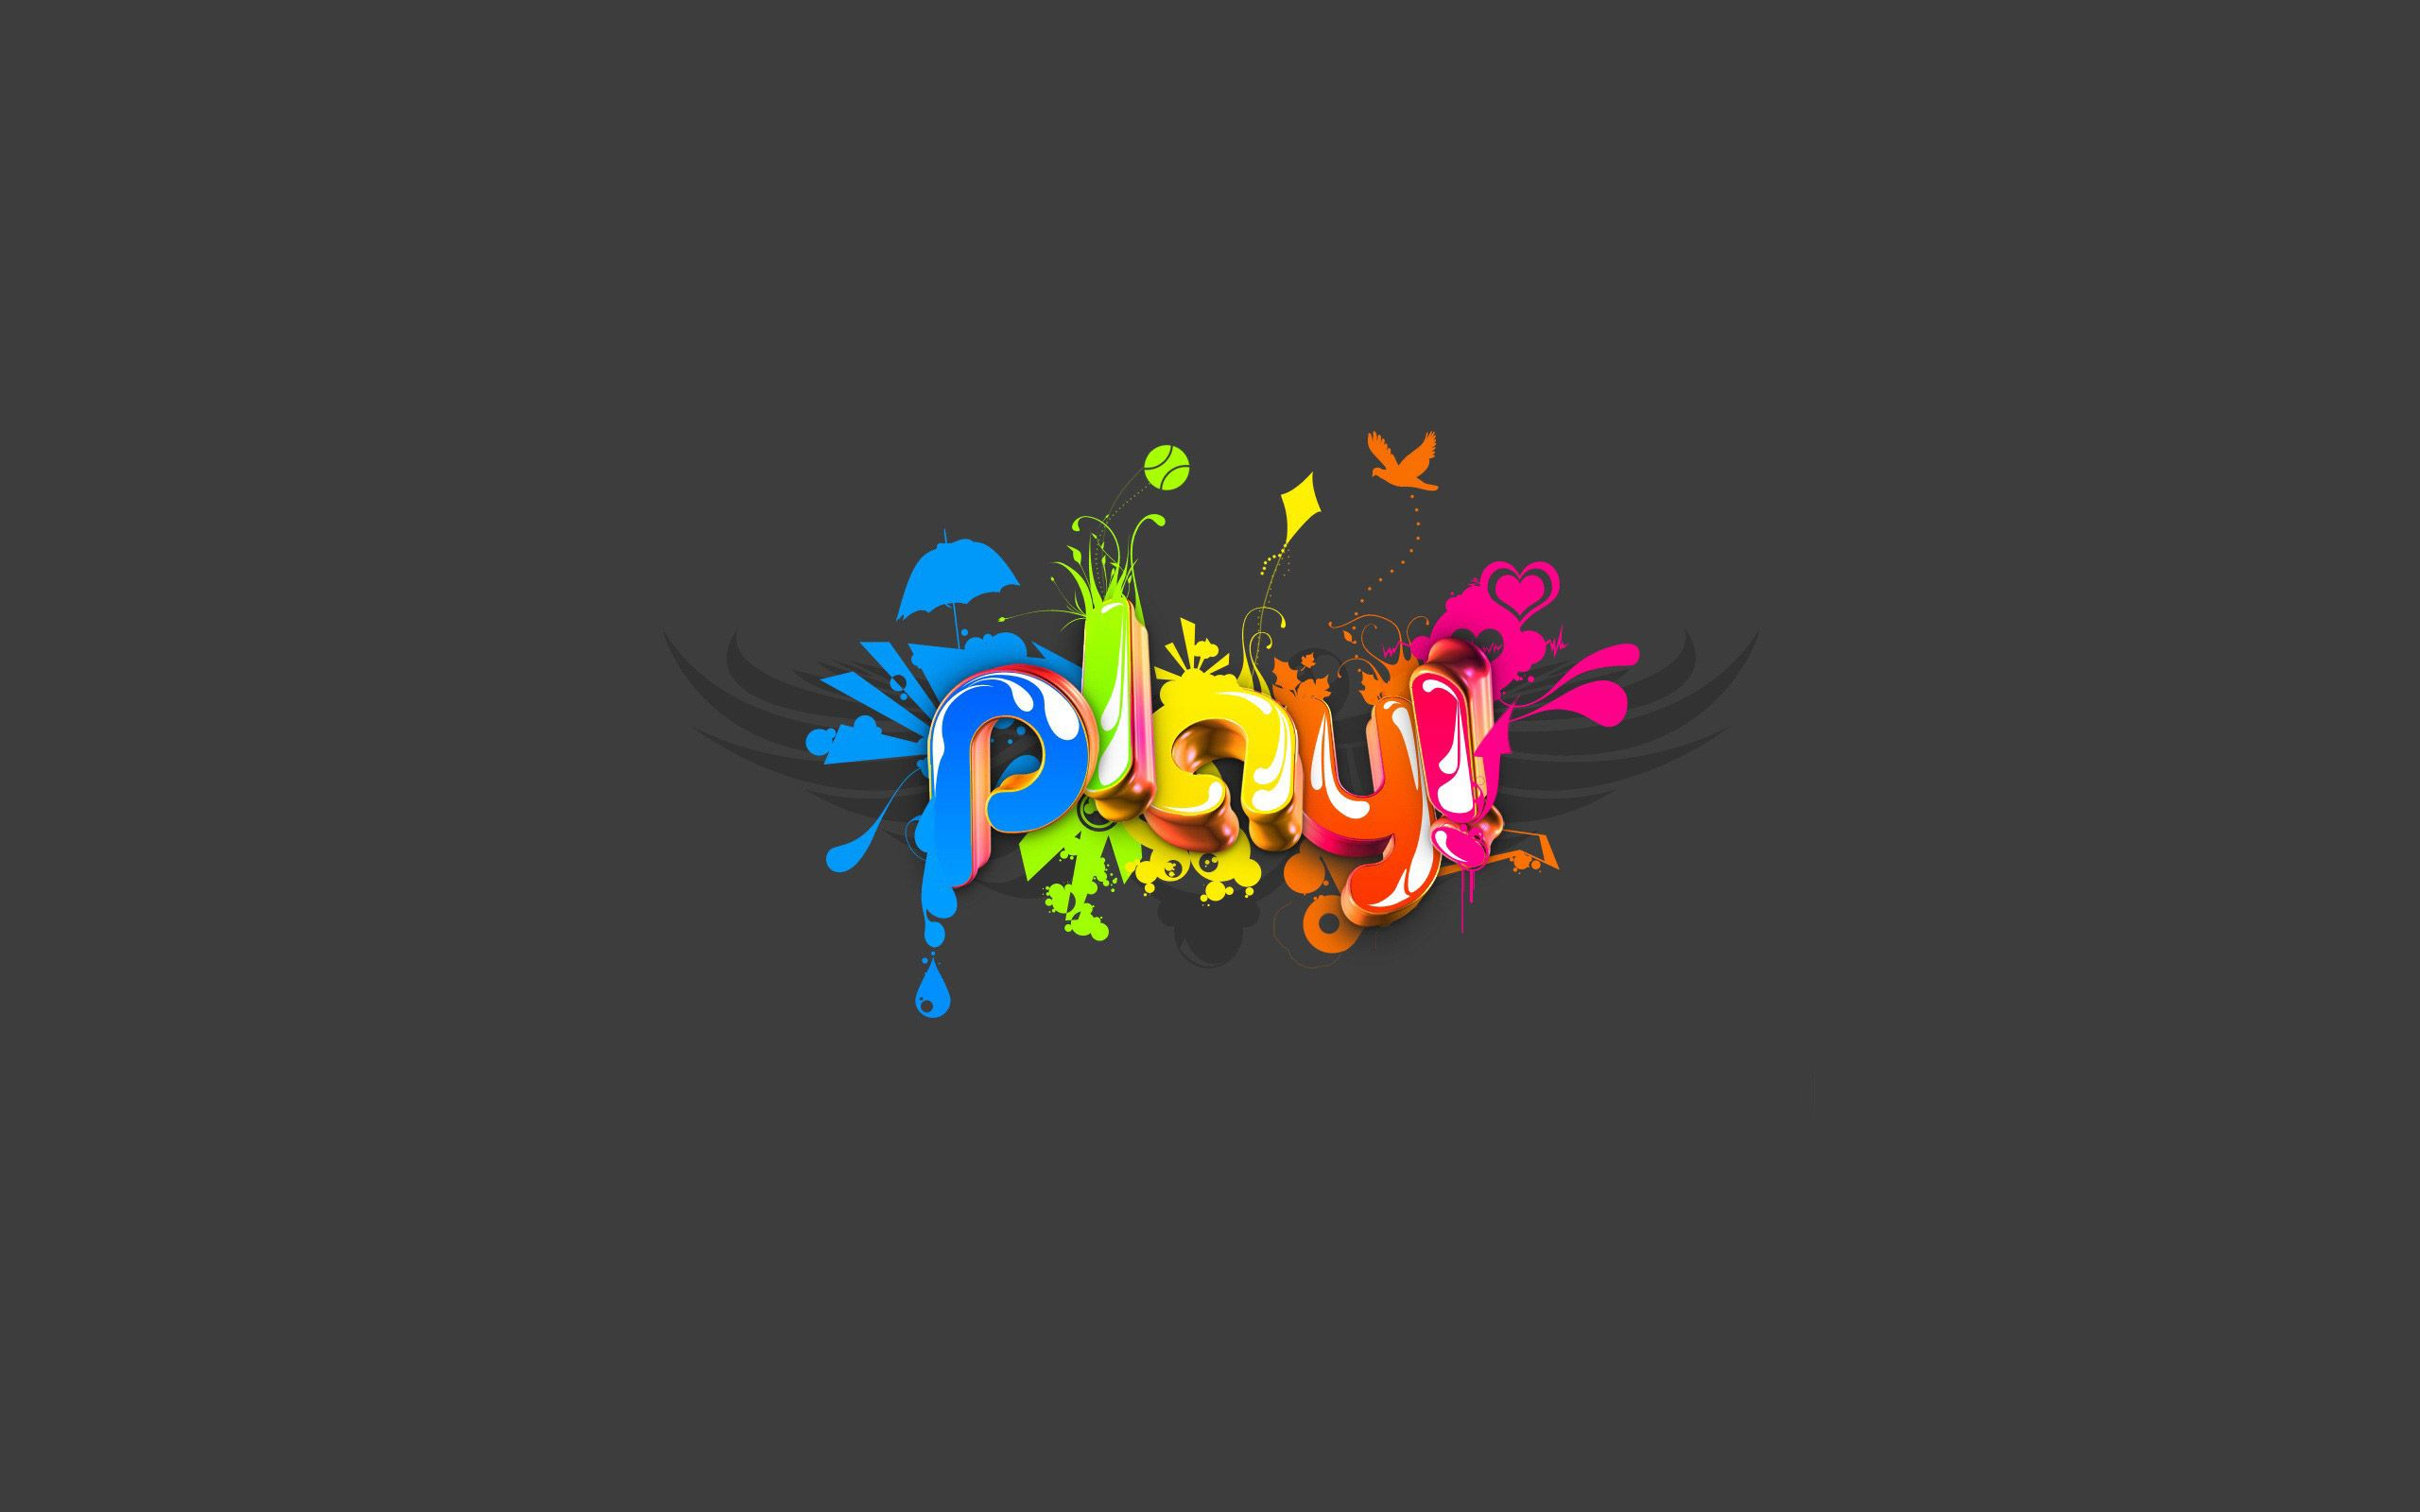 Poster design background hd - Play Typography Google Skins Play Typography Google Backgrounds